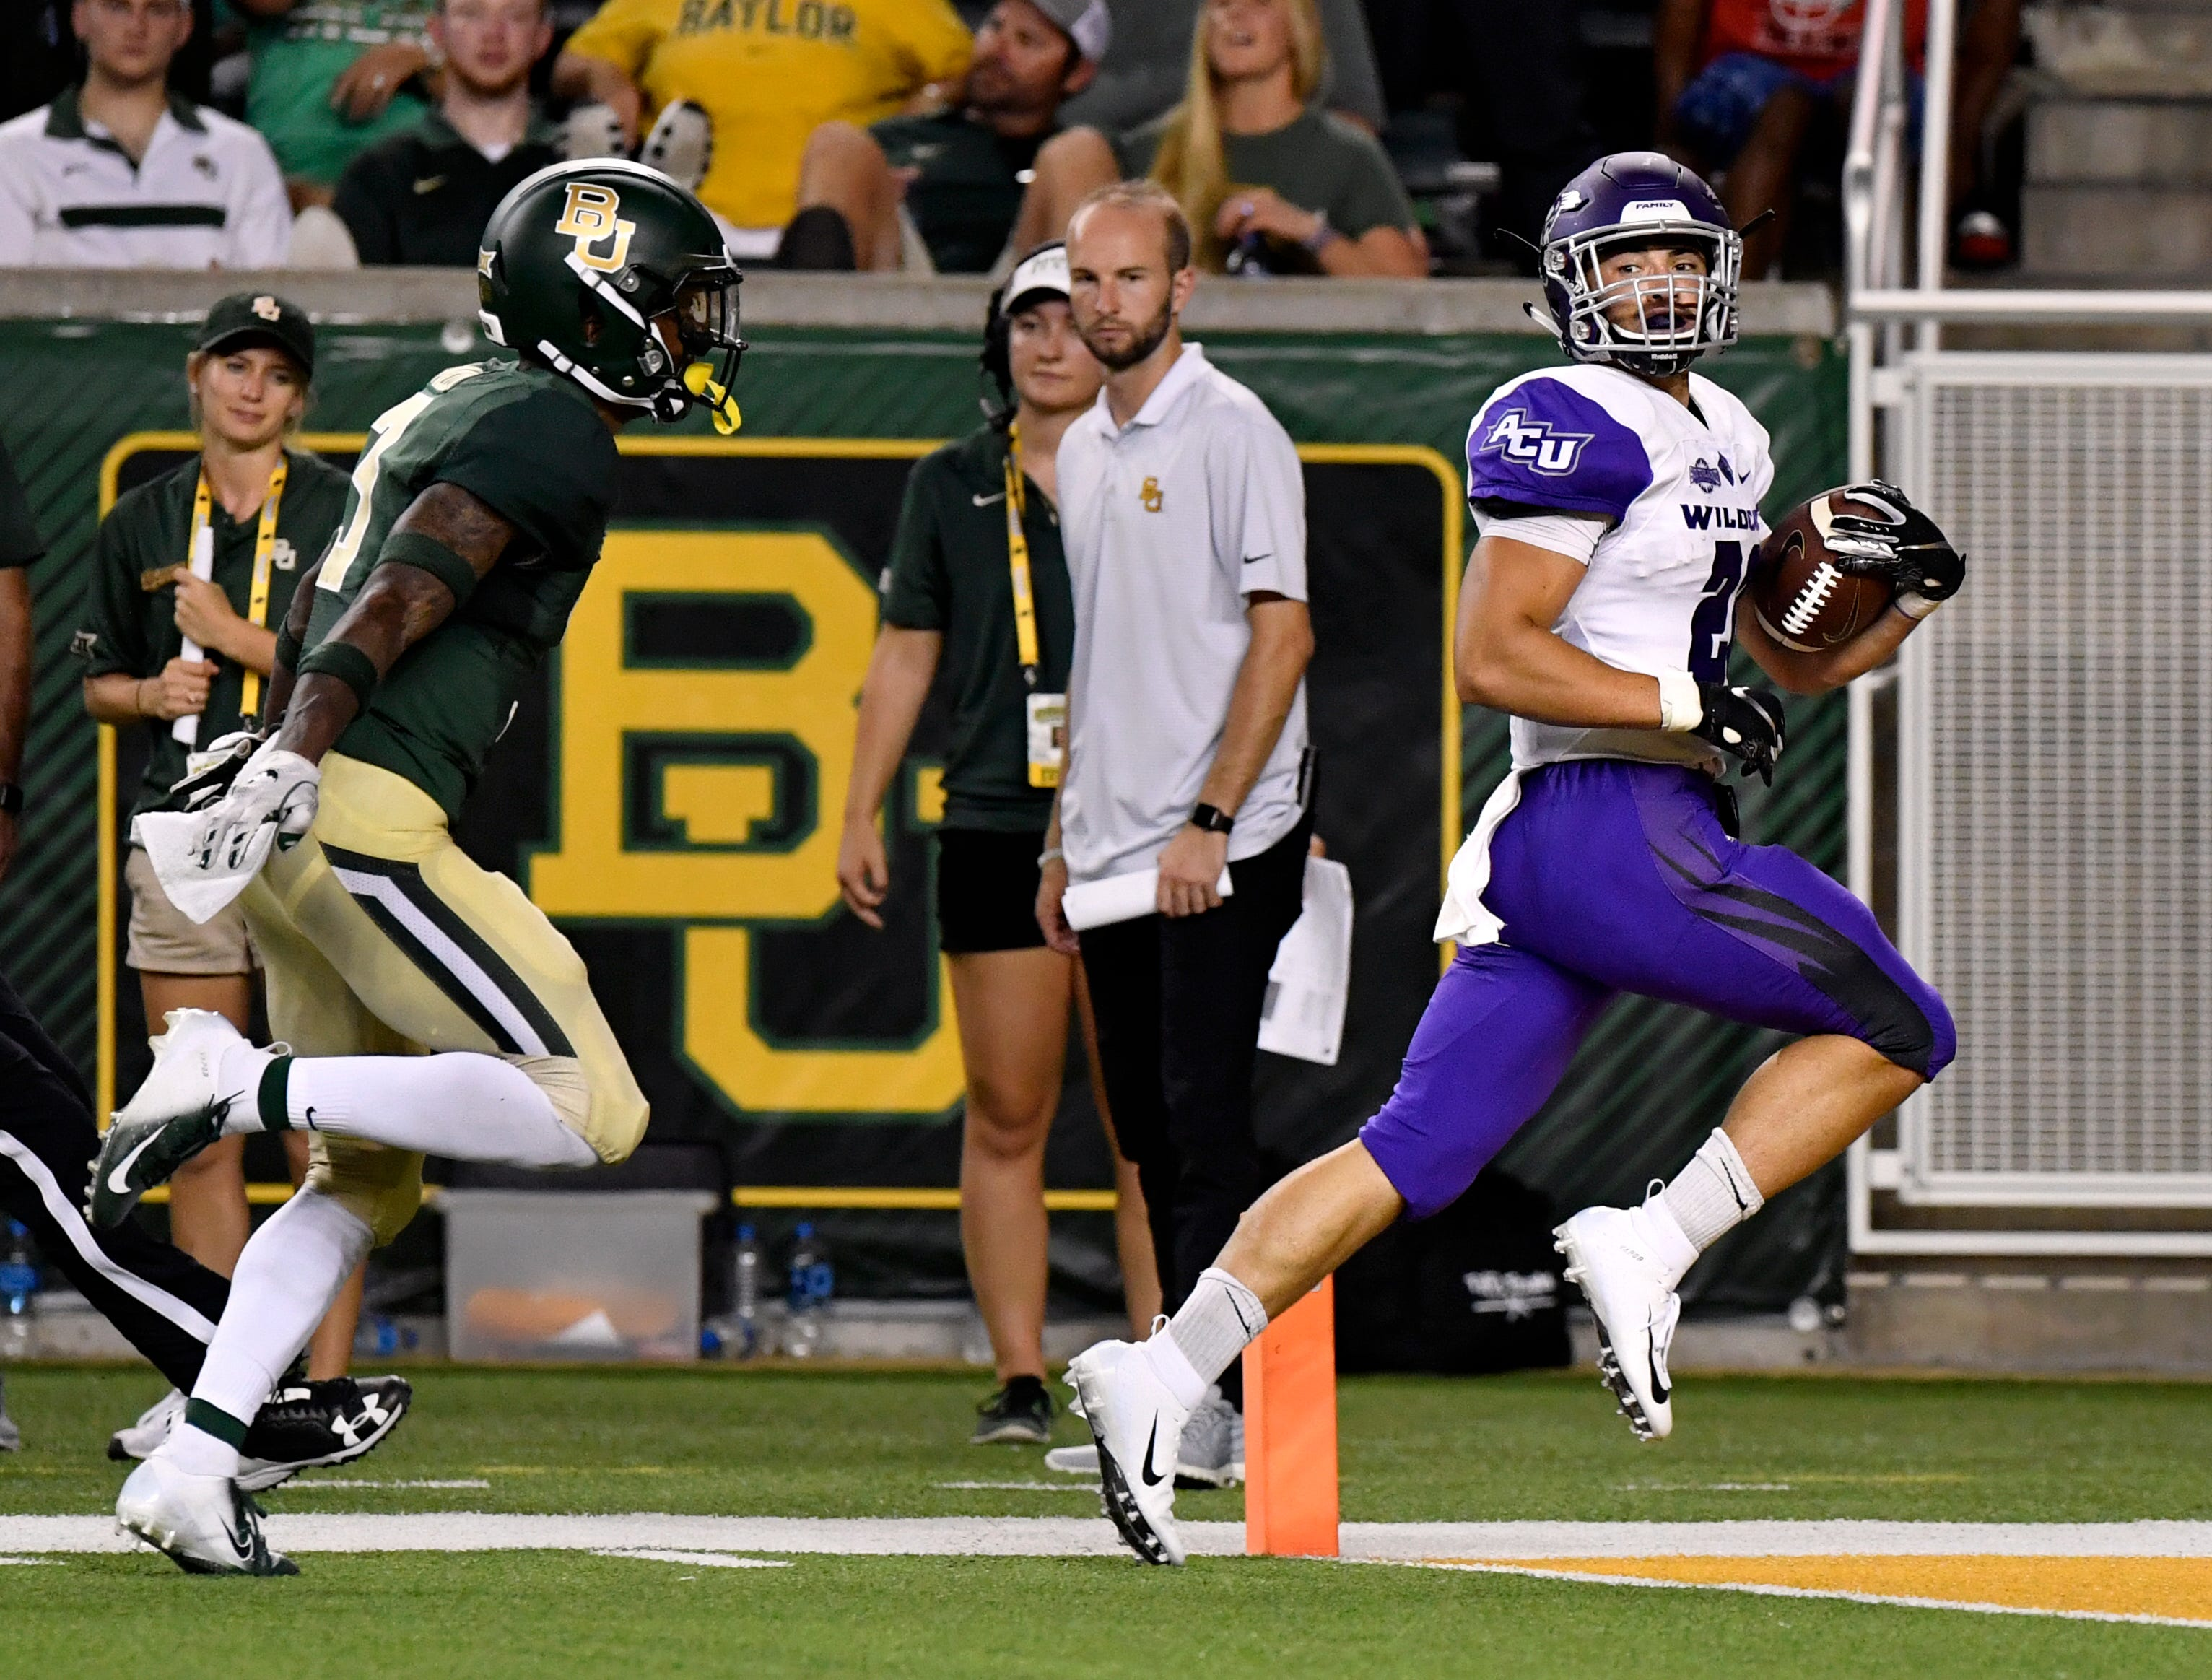 Wildcats running back Billy McCrary scores the second touchdown for Abilene Christian University Saturday Sept. 1, 2018 at Baylor.